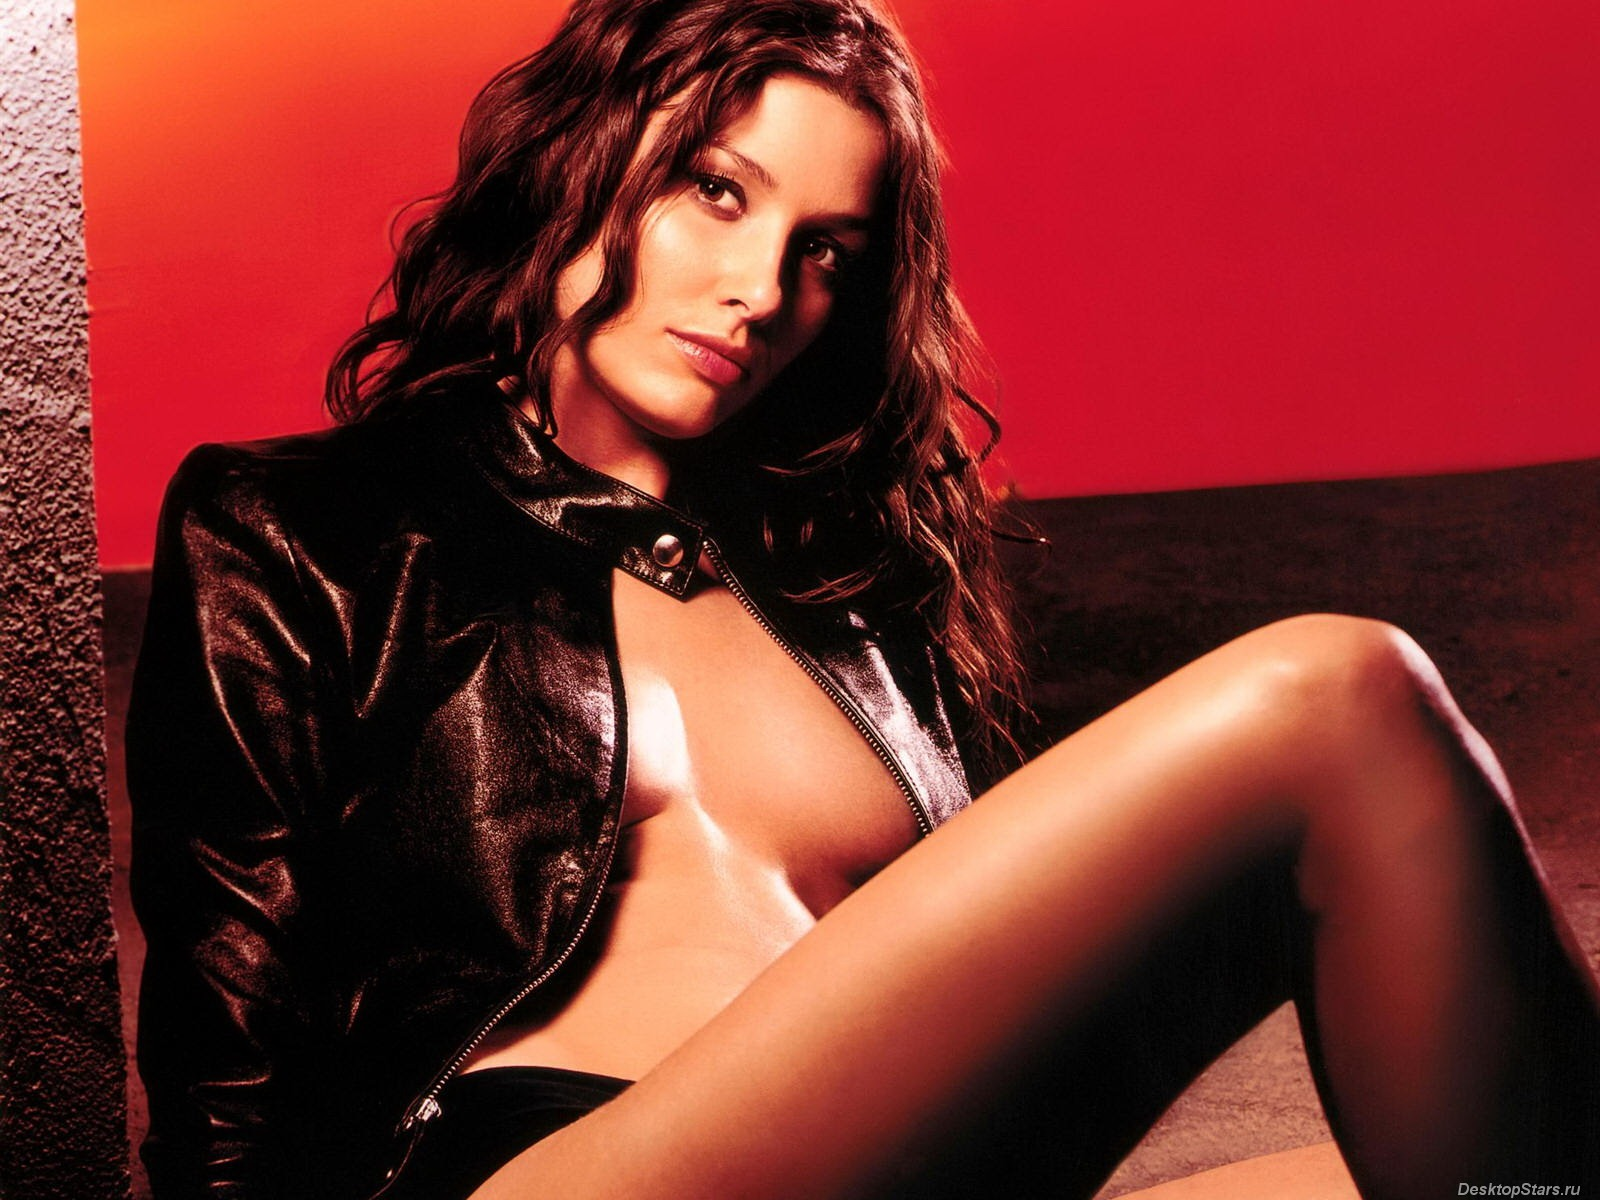 Bridget Moynahan #013 - 1600x1200 Wallpapers Pictures Photos Images